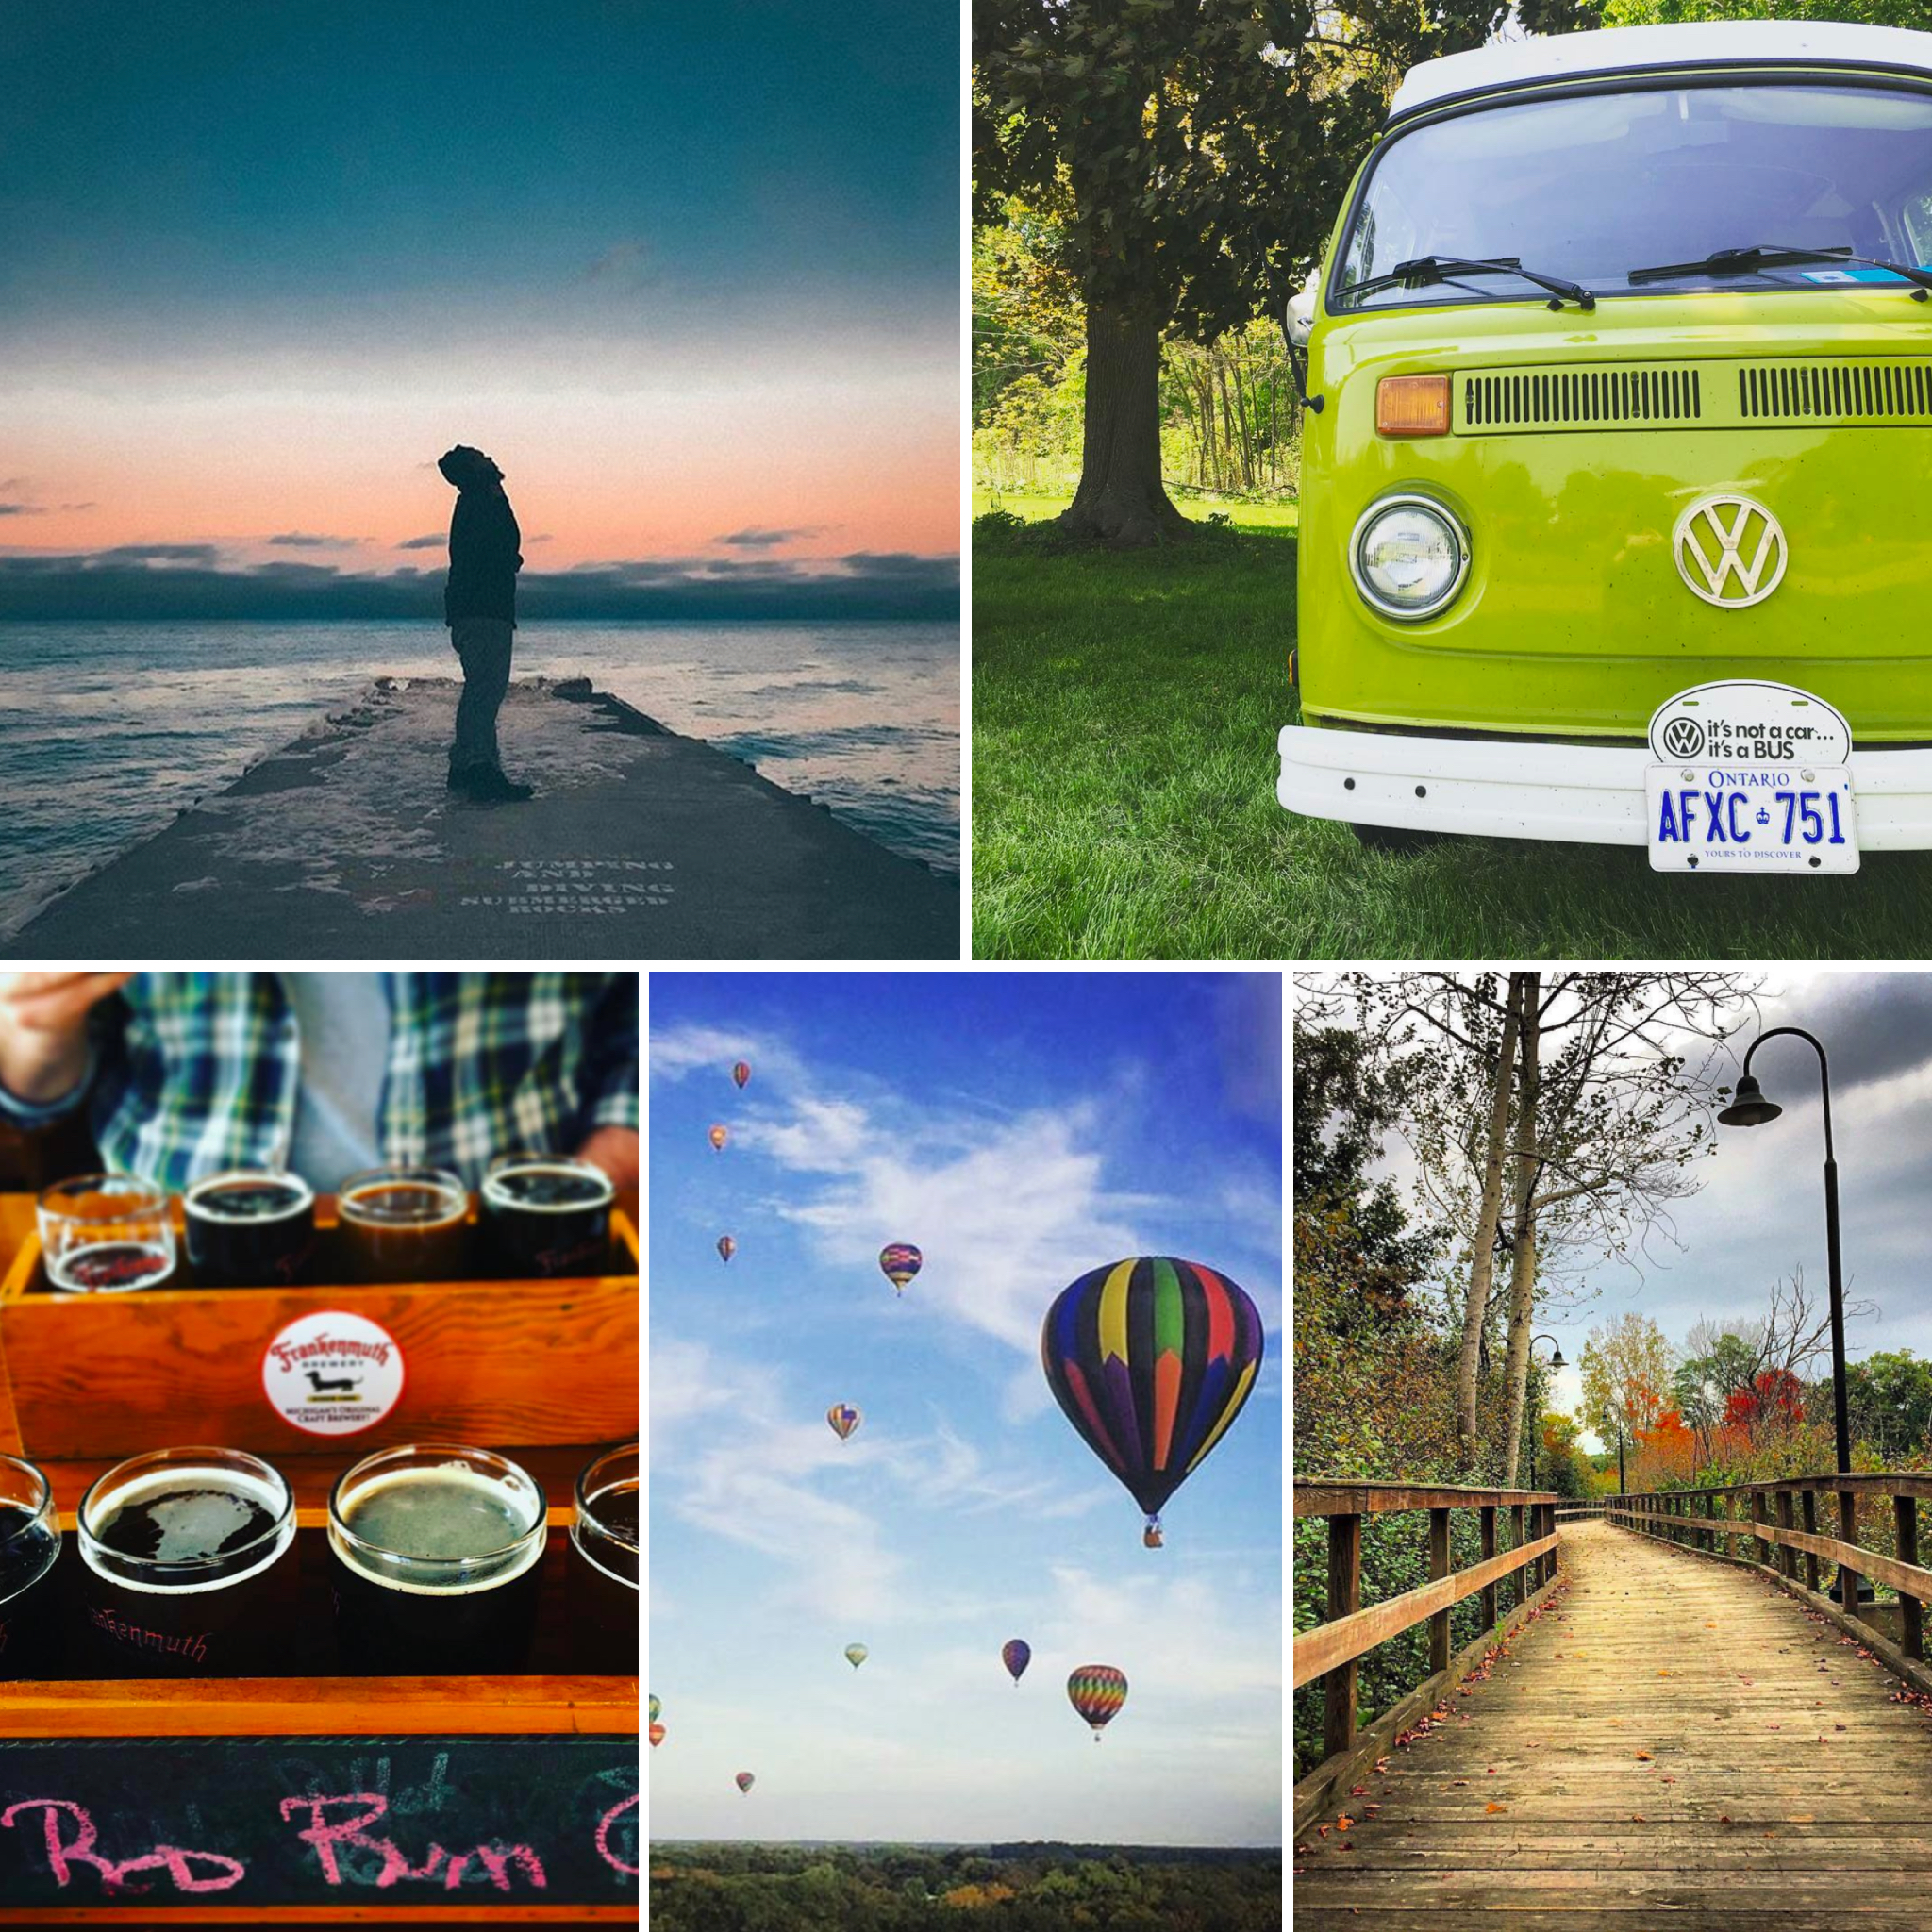 7 Things We Wish the Tourism Industry Knew About Instagram